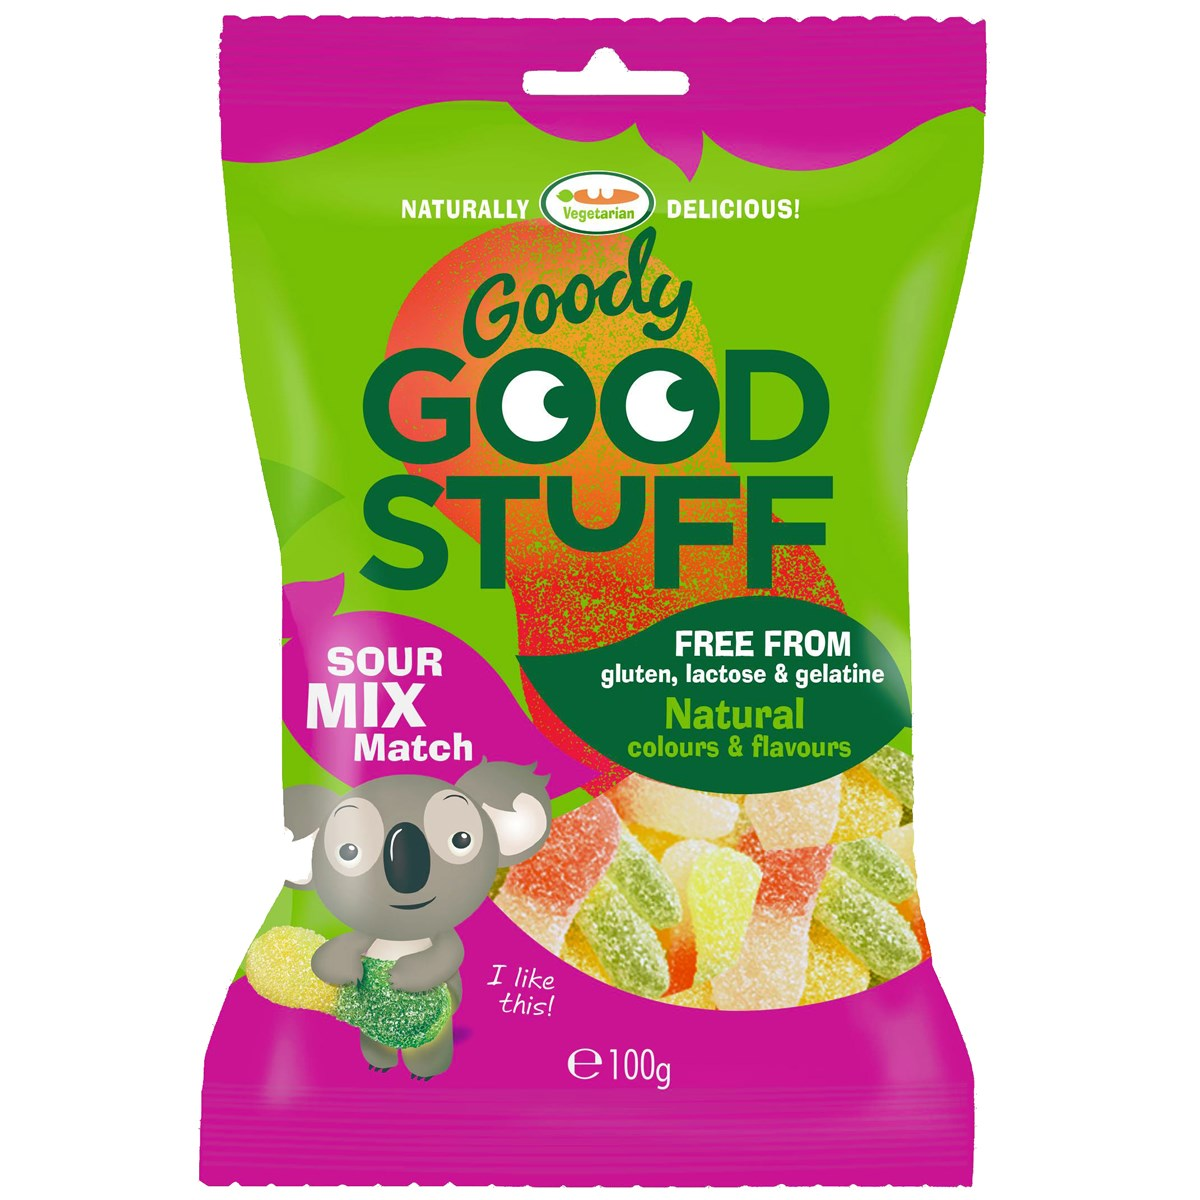 Goody Good Stuff Gummy Candy Sour Mix Match